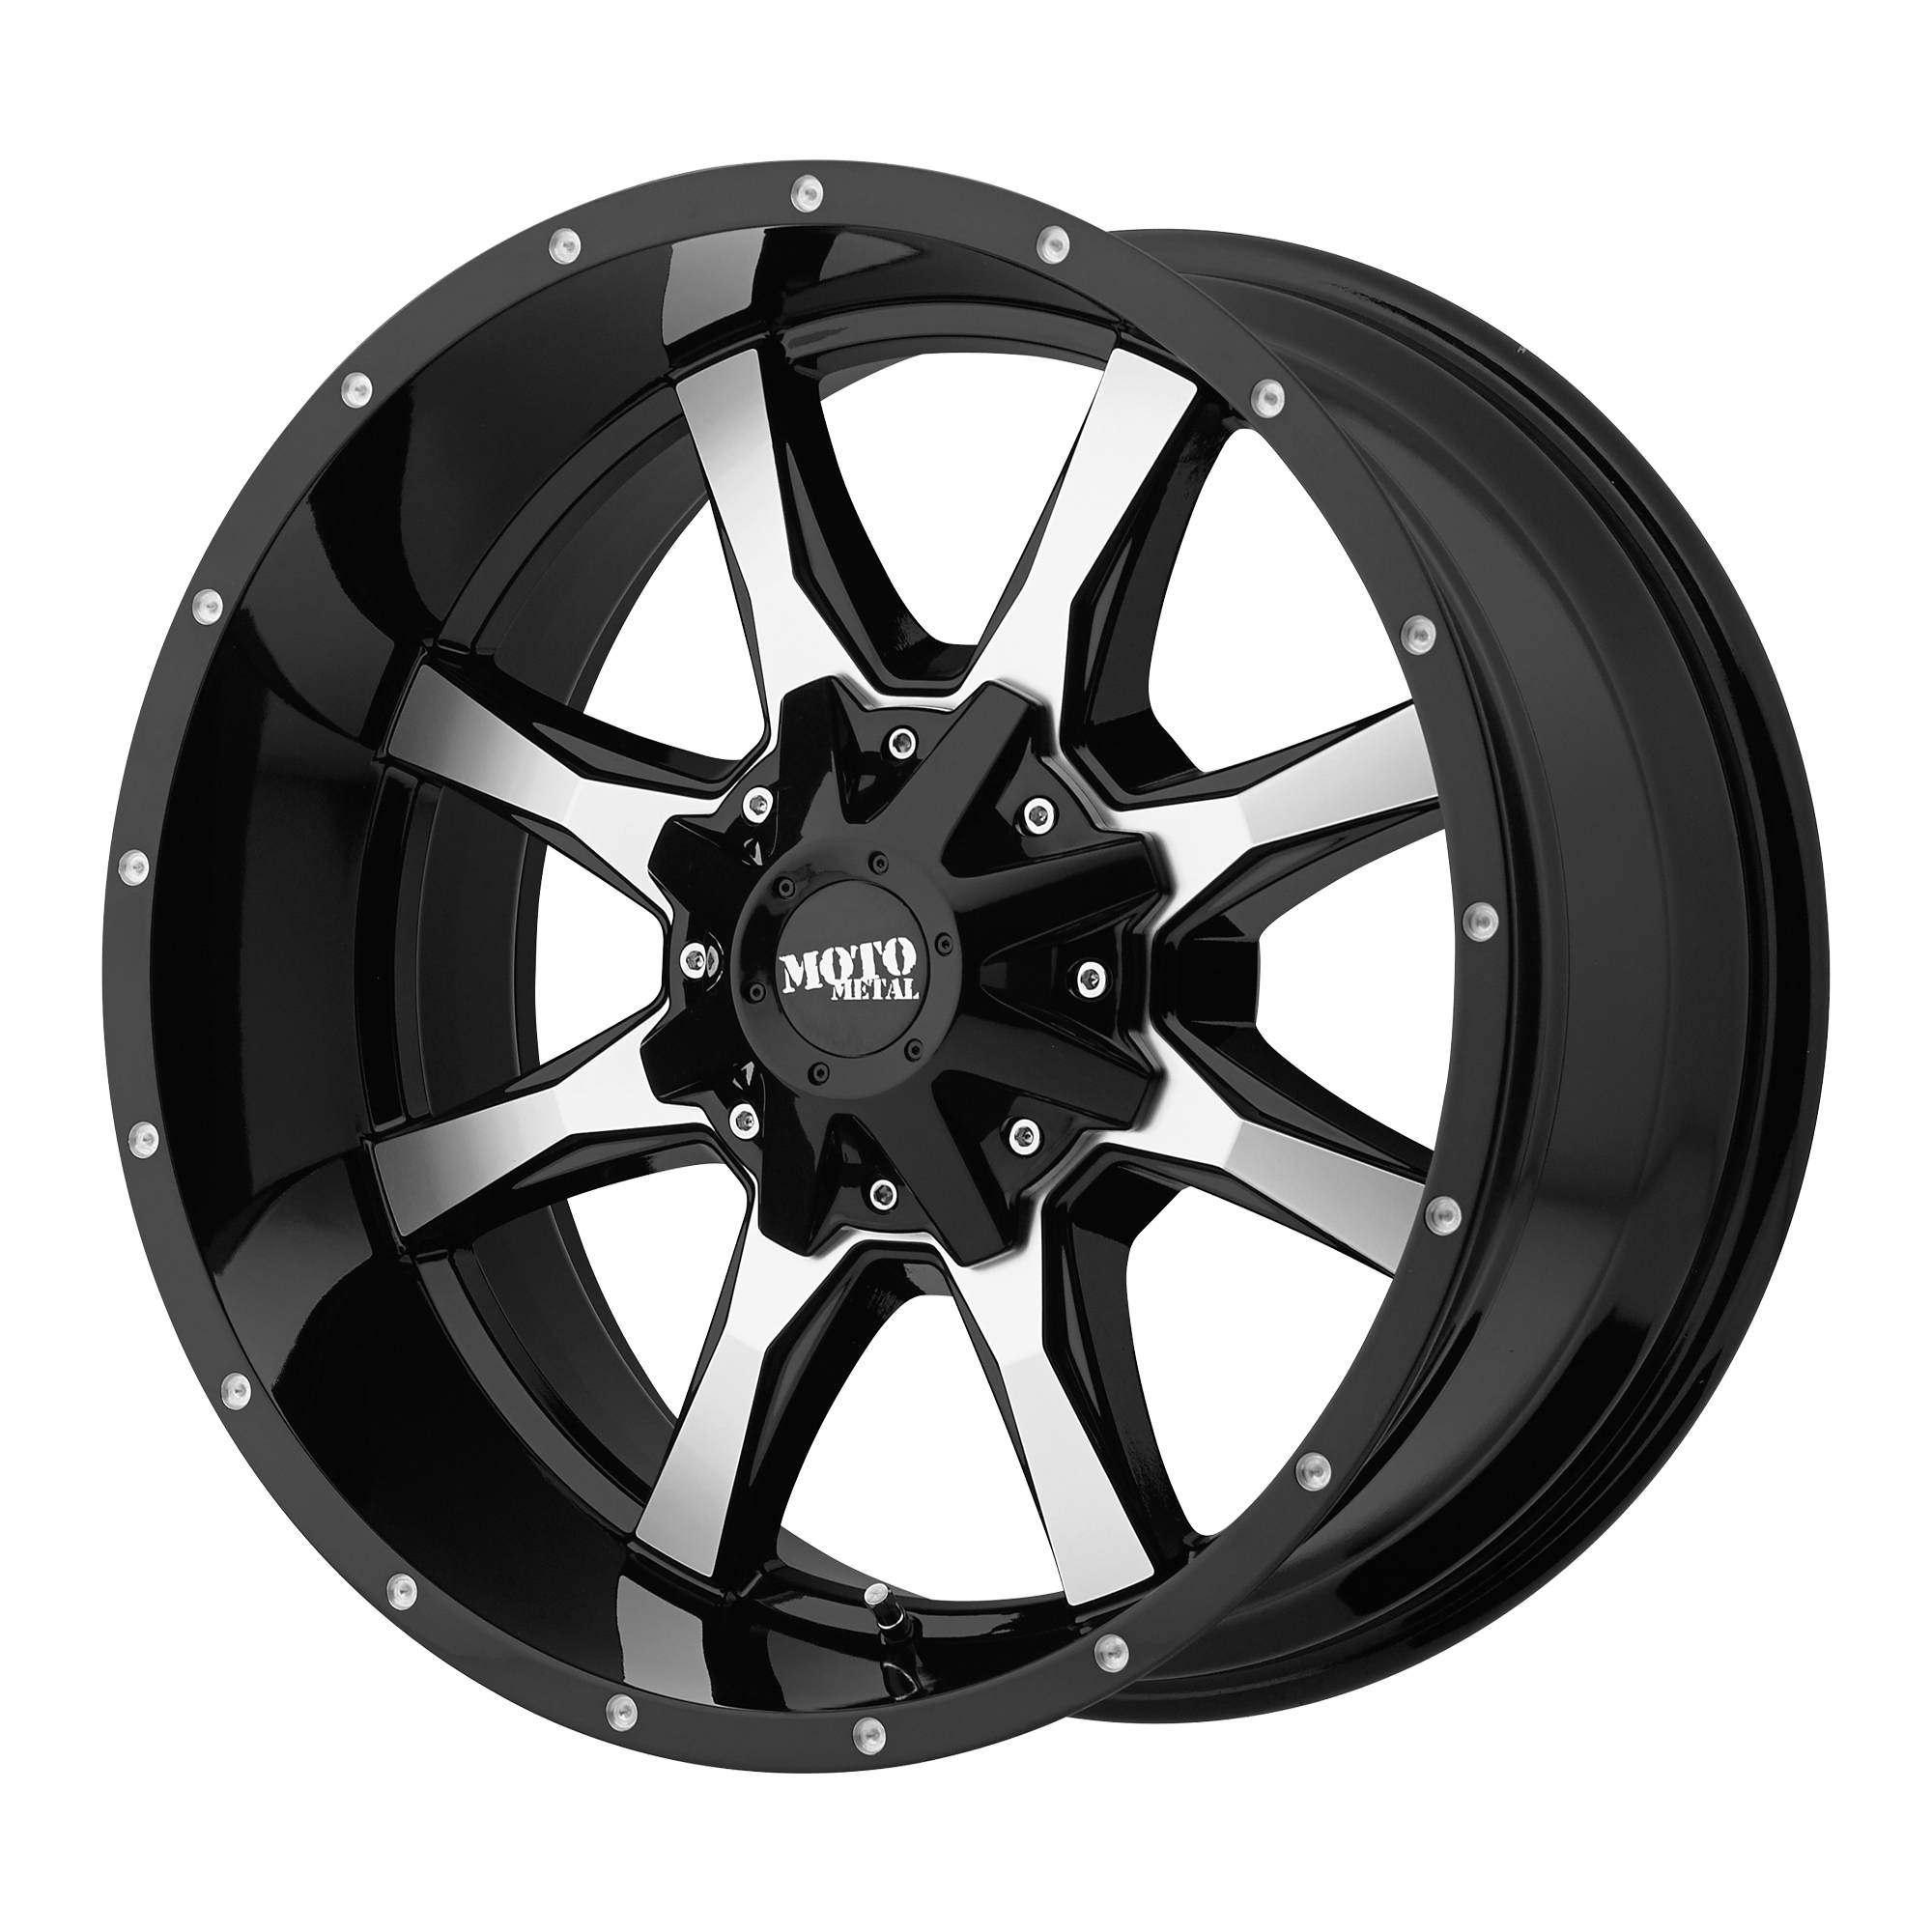 Looking For 6x120 Wheels 6x120 Rims On Sale